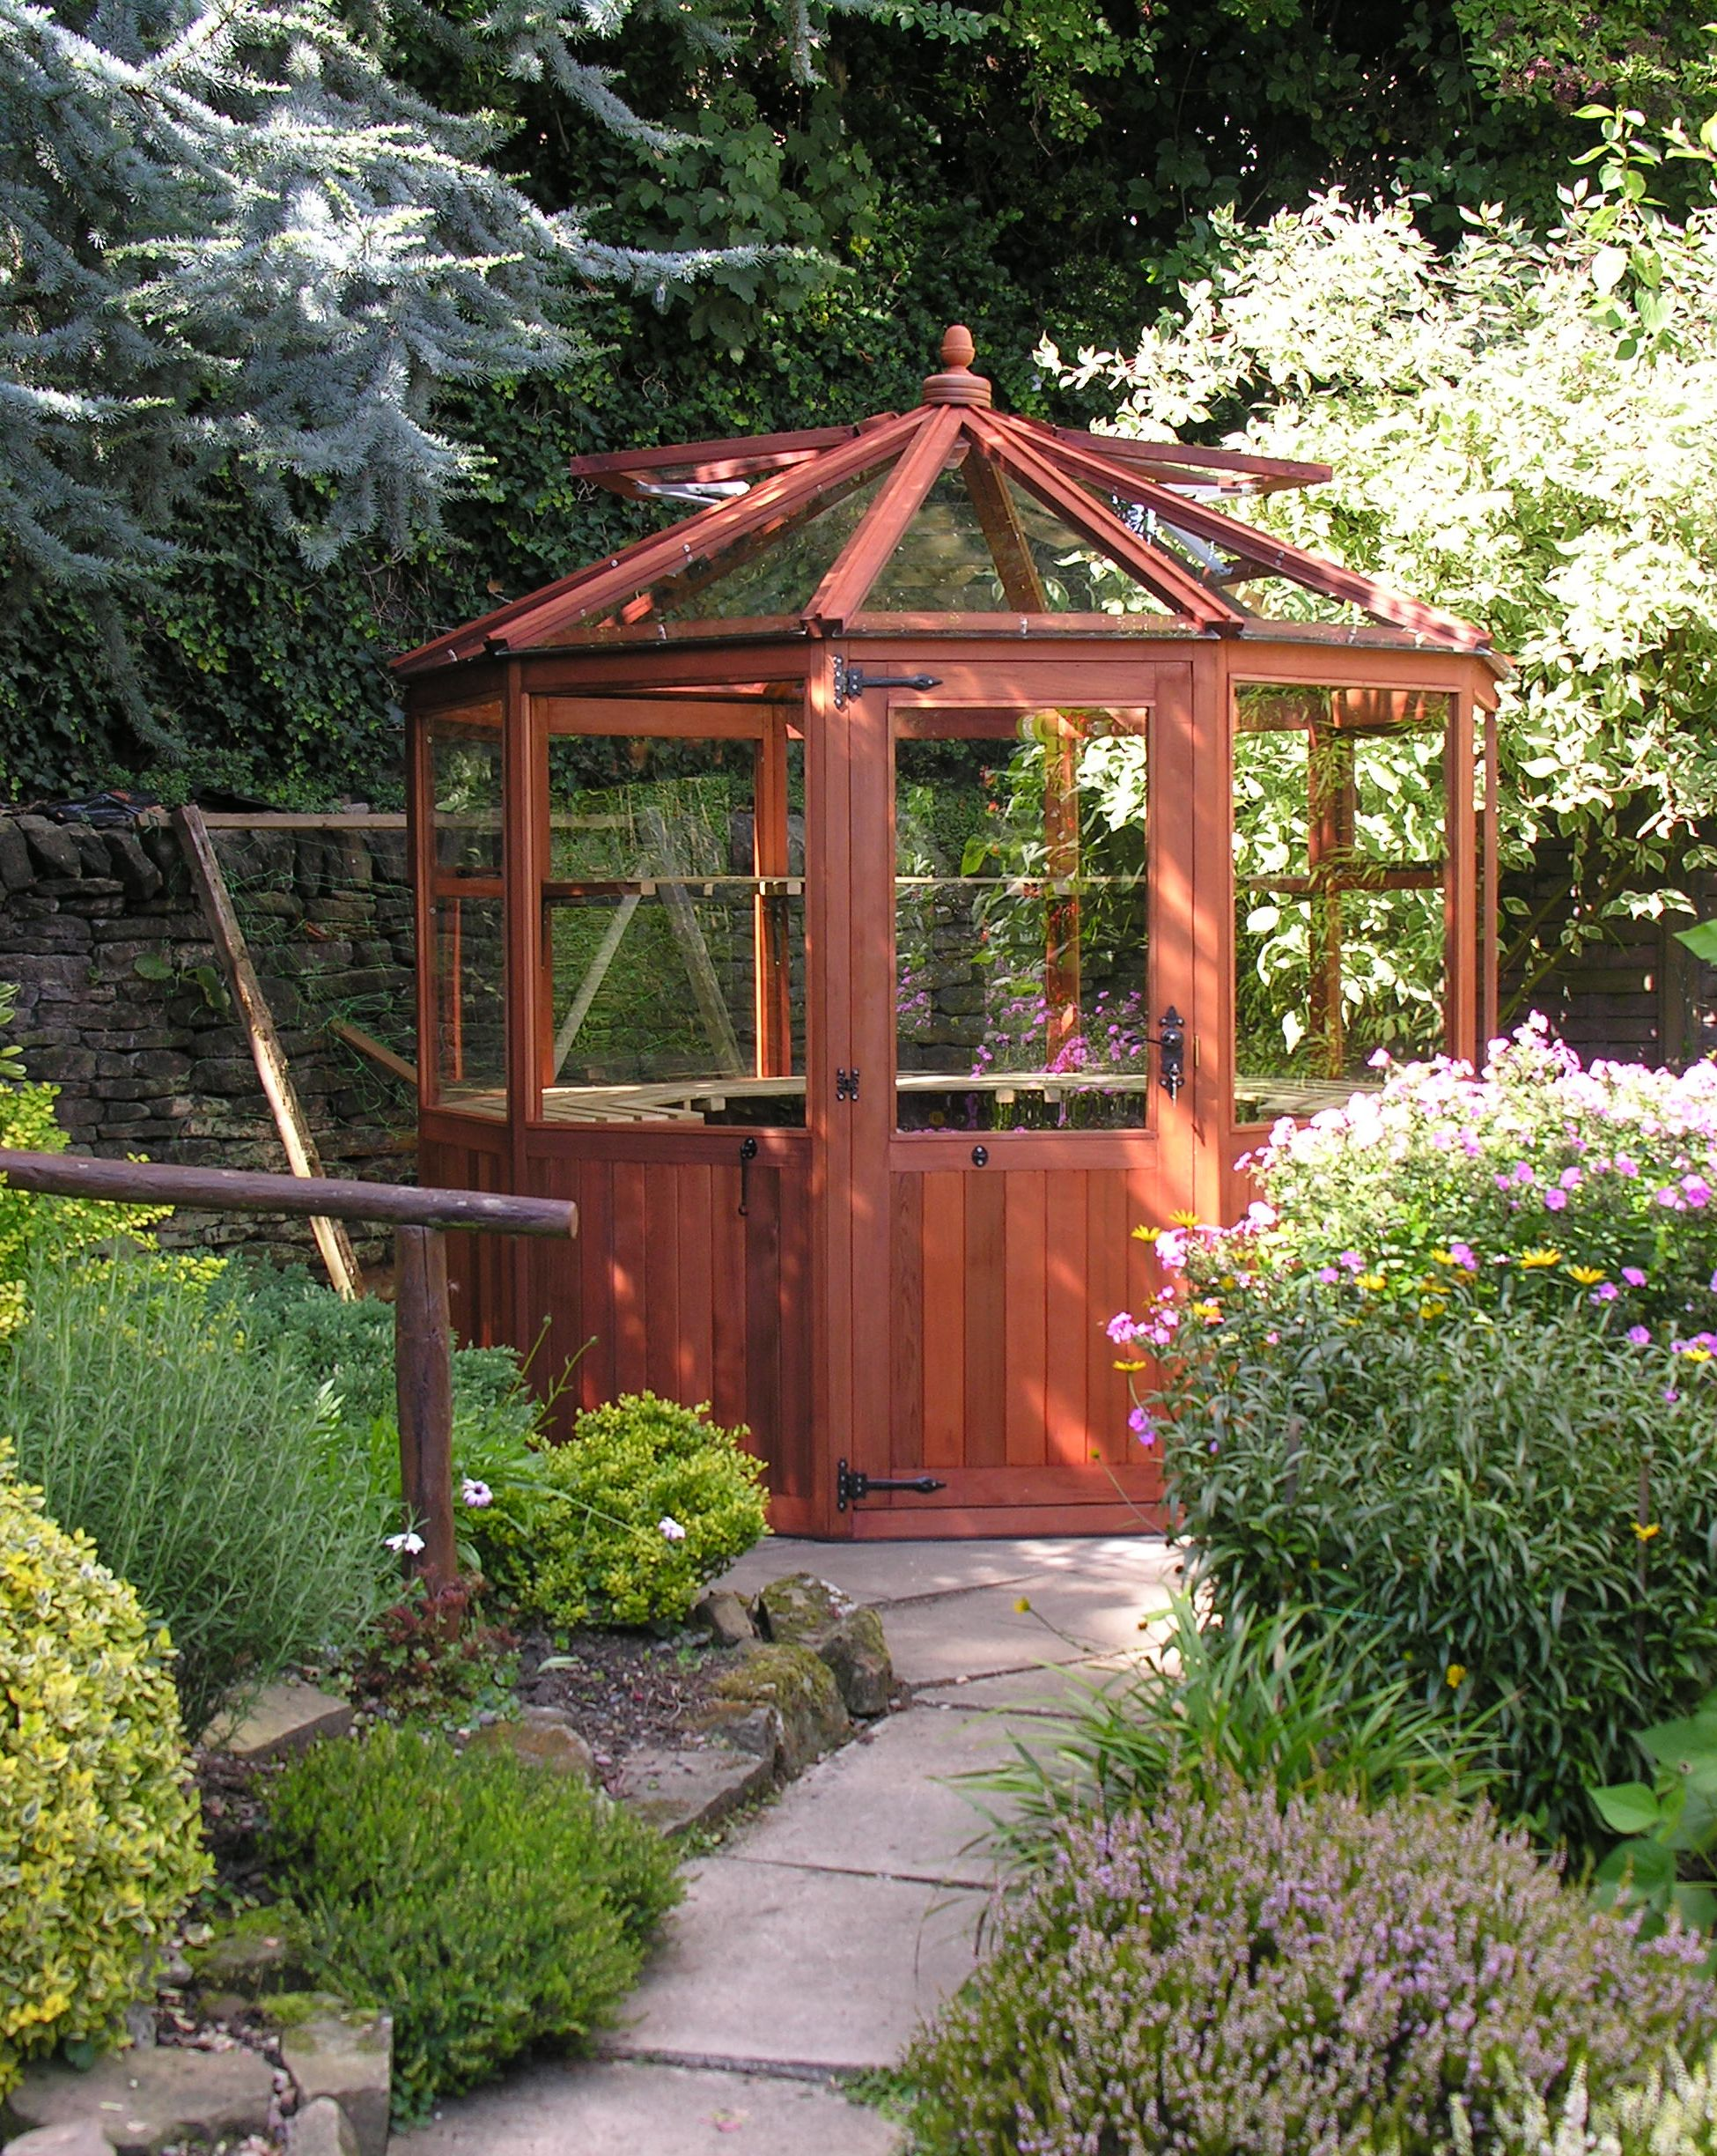 dagdale a small octagonal greenhouse or use as a gazebo http